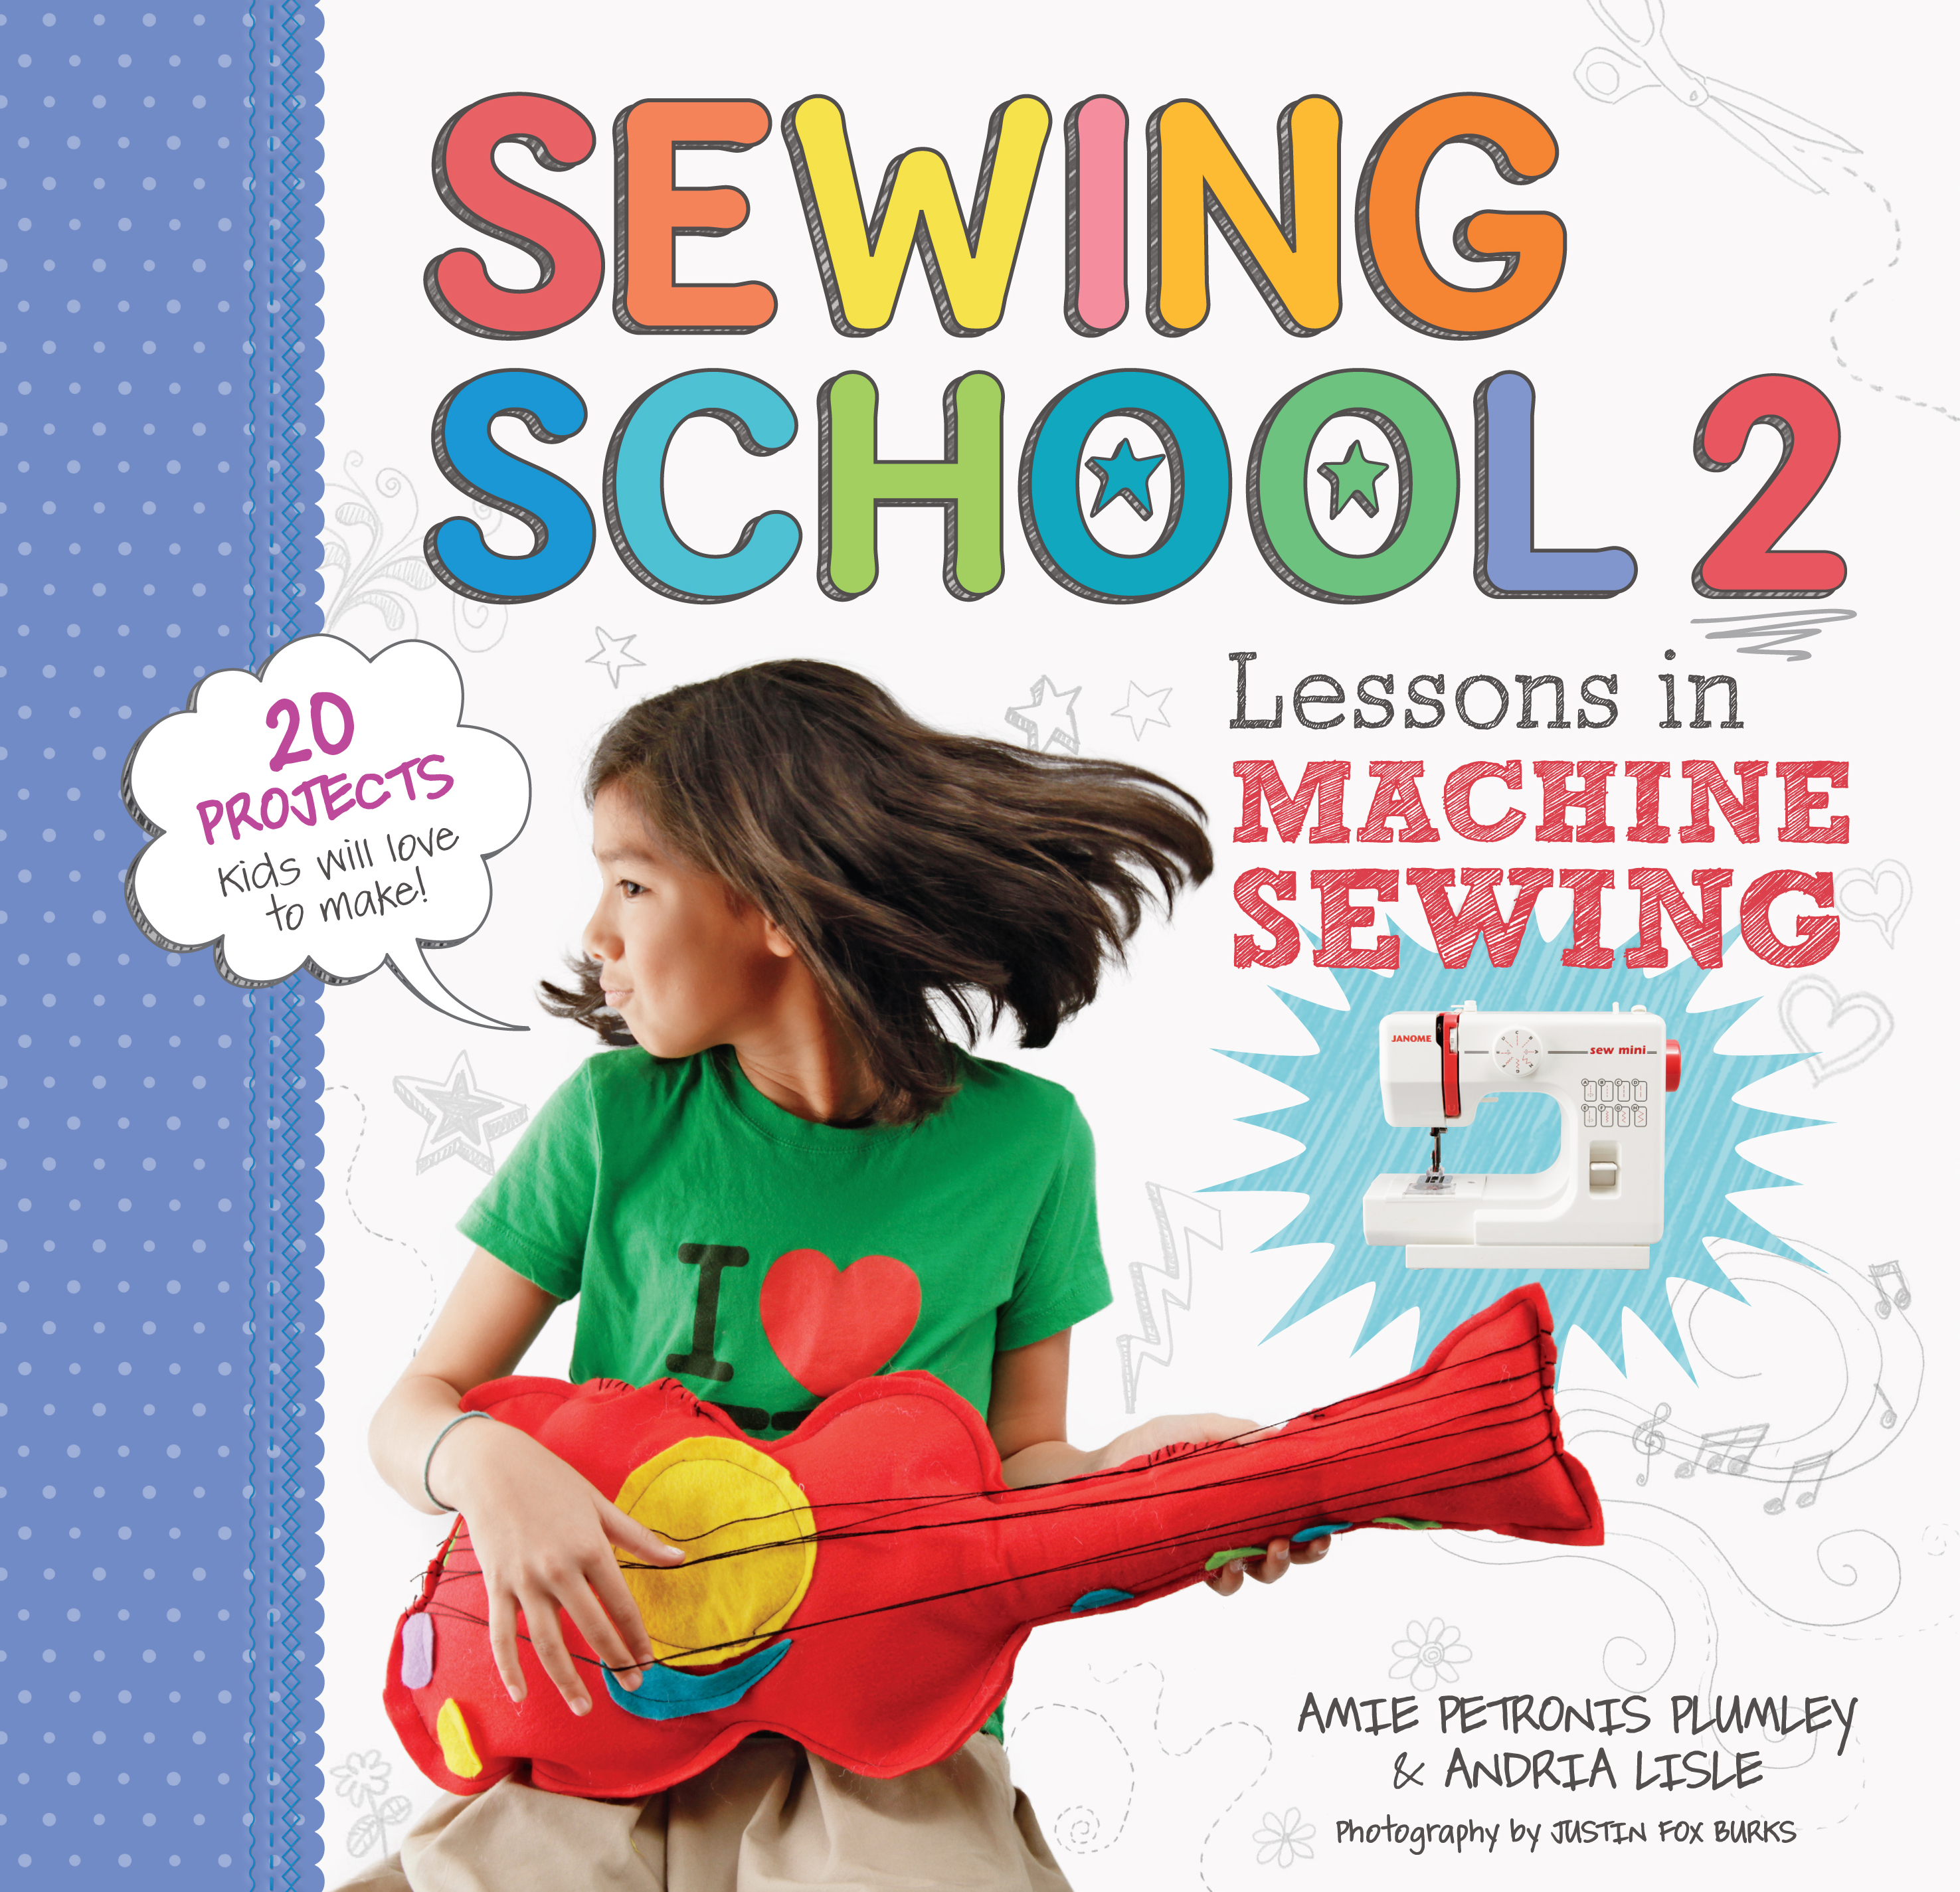 Sewing School <sup>&reg;</sup> 2 Lessons in Machine Sewing; 20 Projects Kids Will Love to Make - Andria Lisle